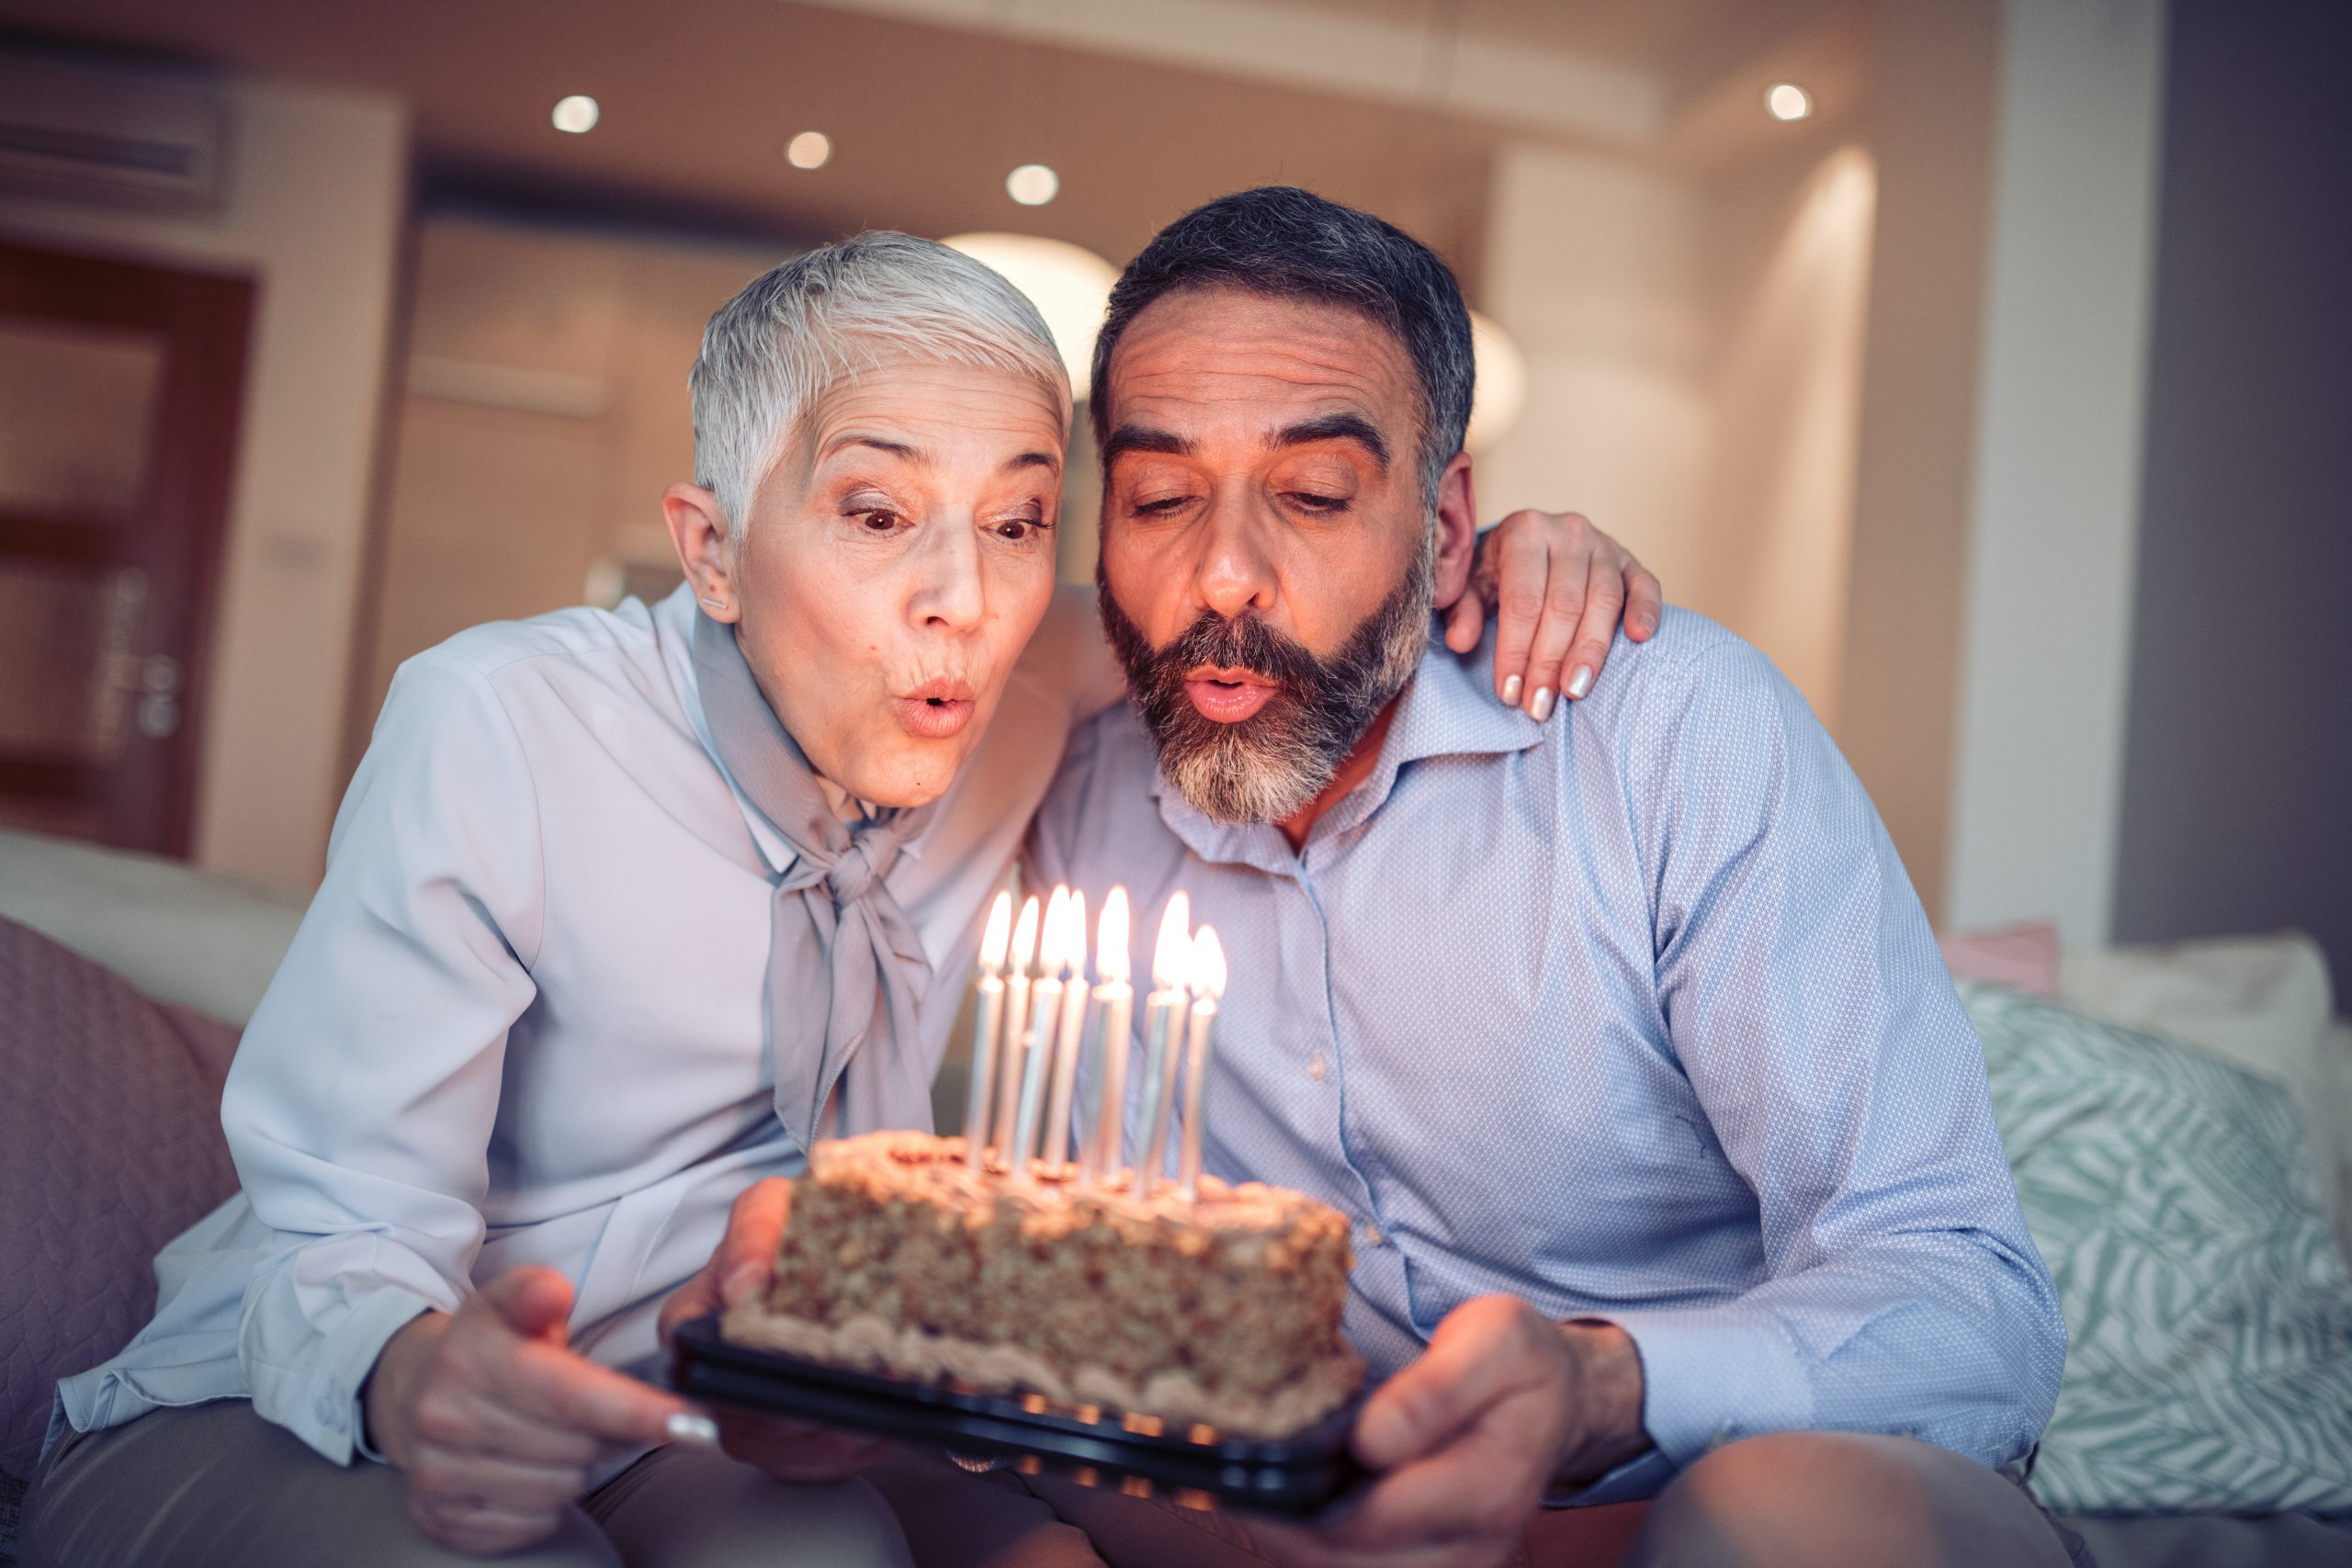 Senior couple blows out candles on birthday cake